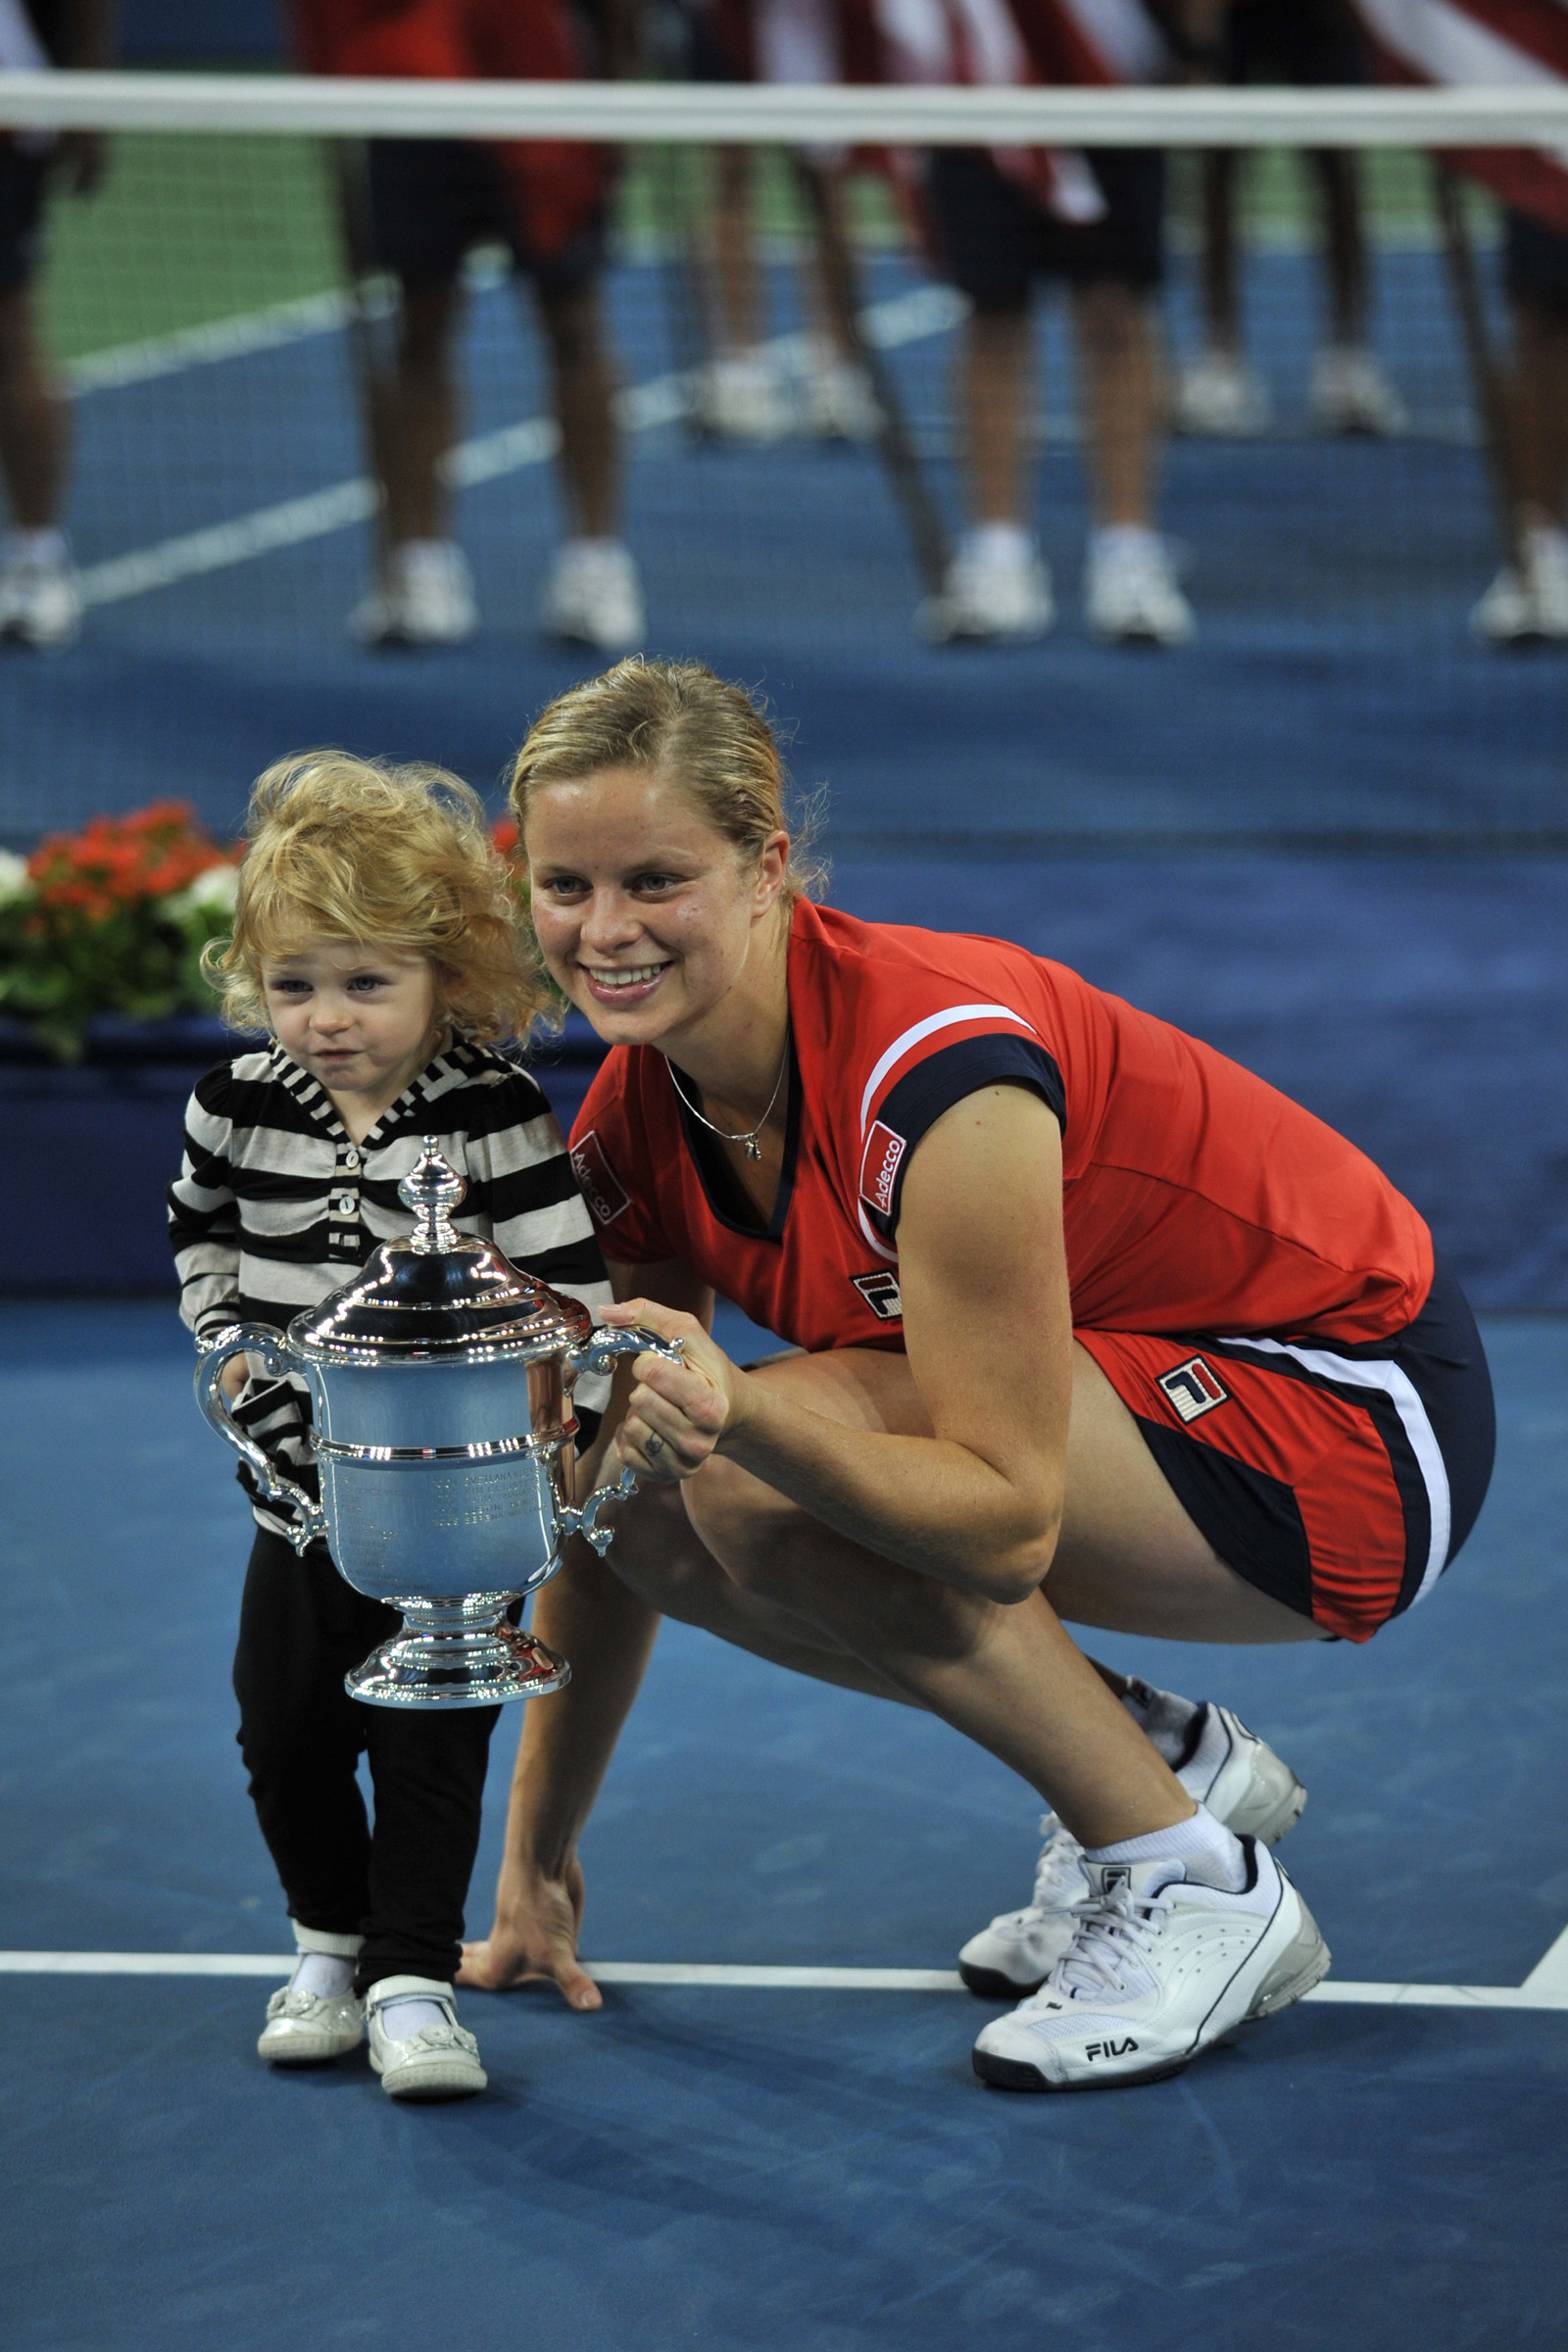 Fila Extends Agreement with 2009 US Open Champion Kim Clijsters